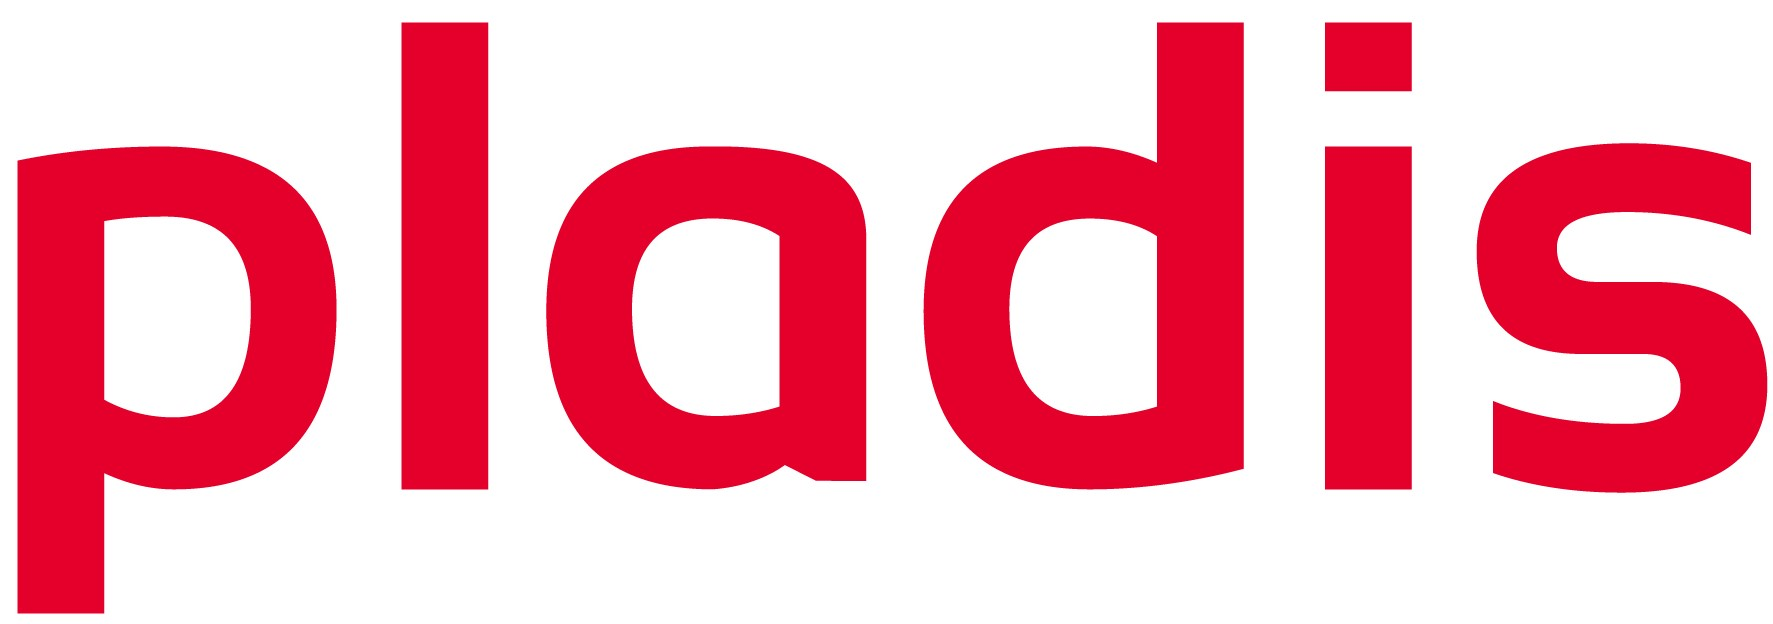 Supply Chain Director, Global Sales and Operational Planning, pladis